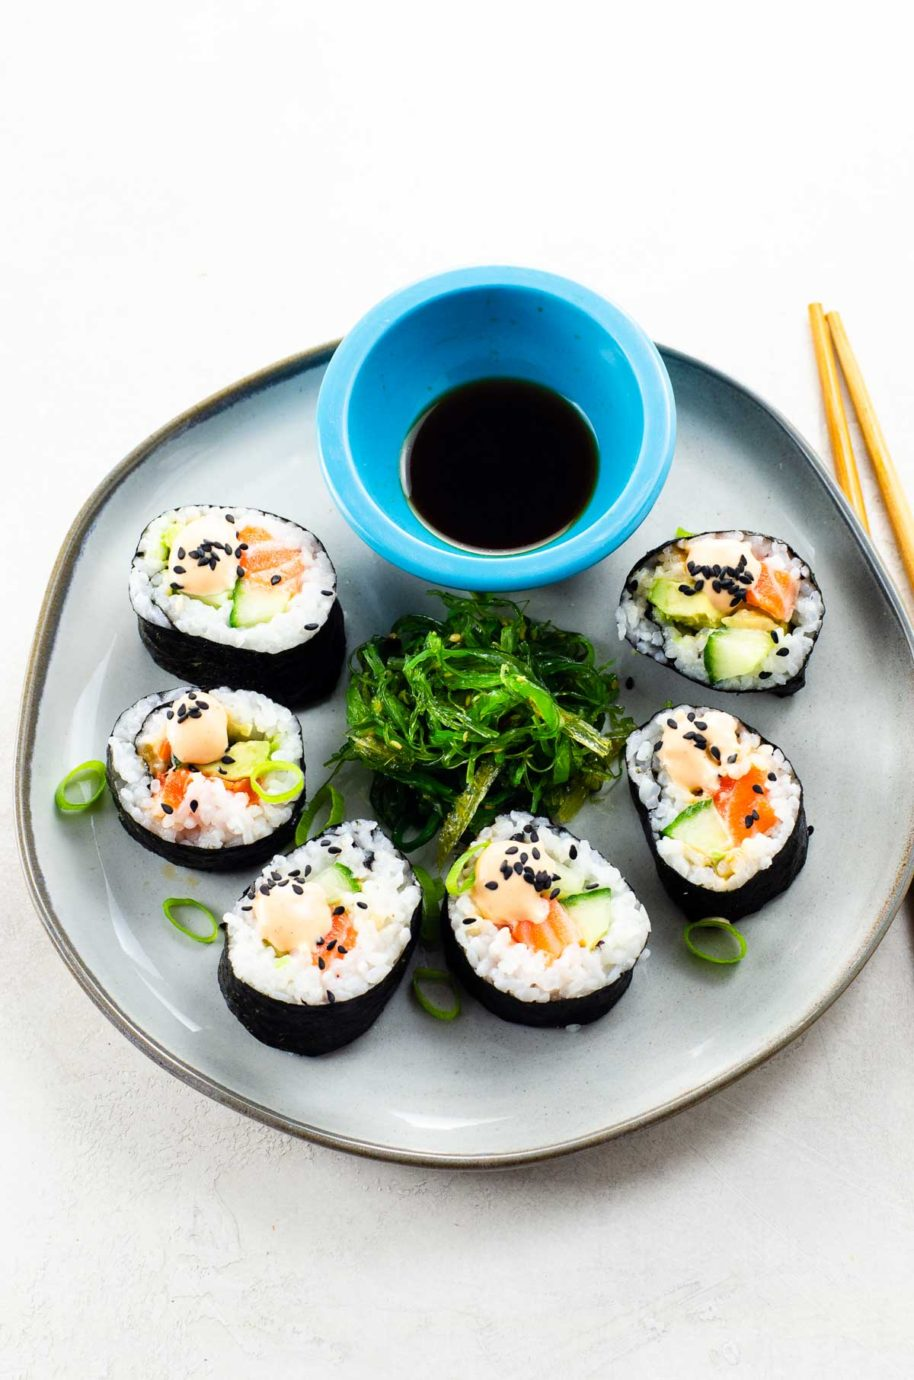 spicy salmon roll, seaweed salad, and soy sauce